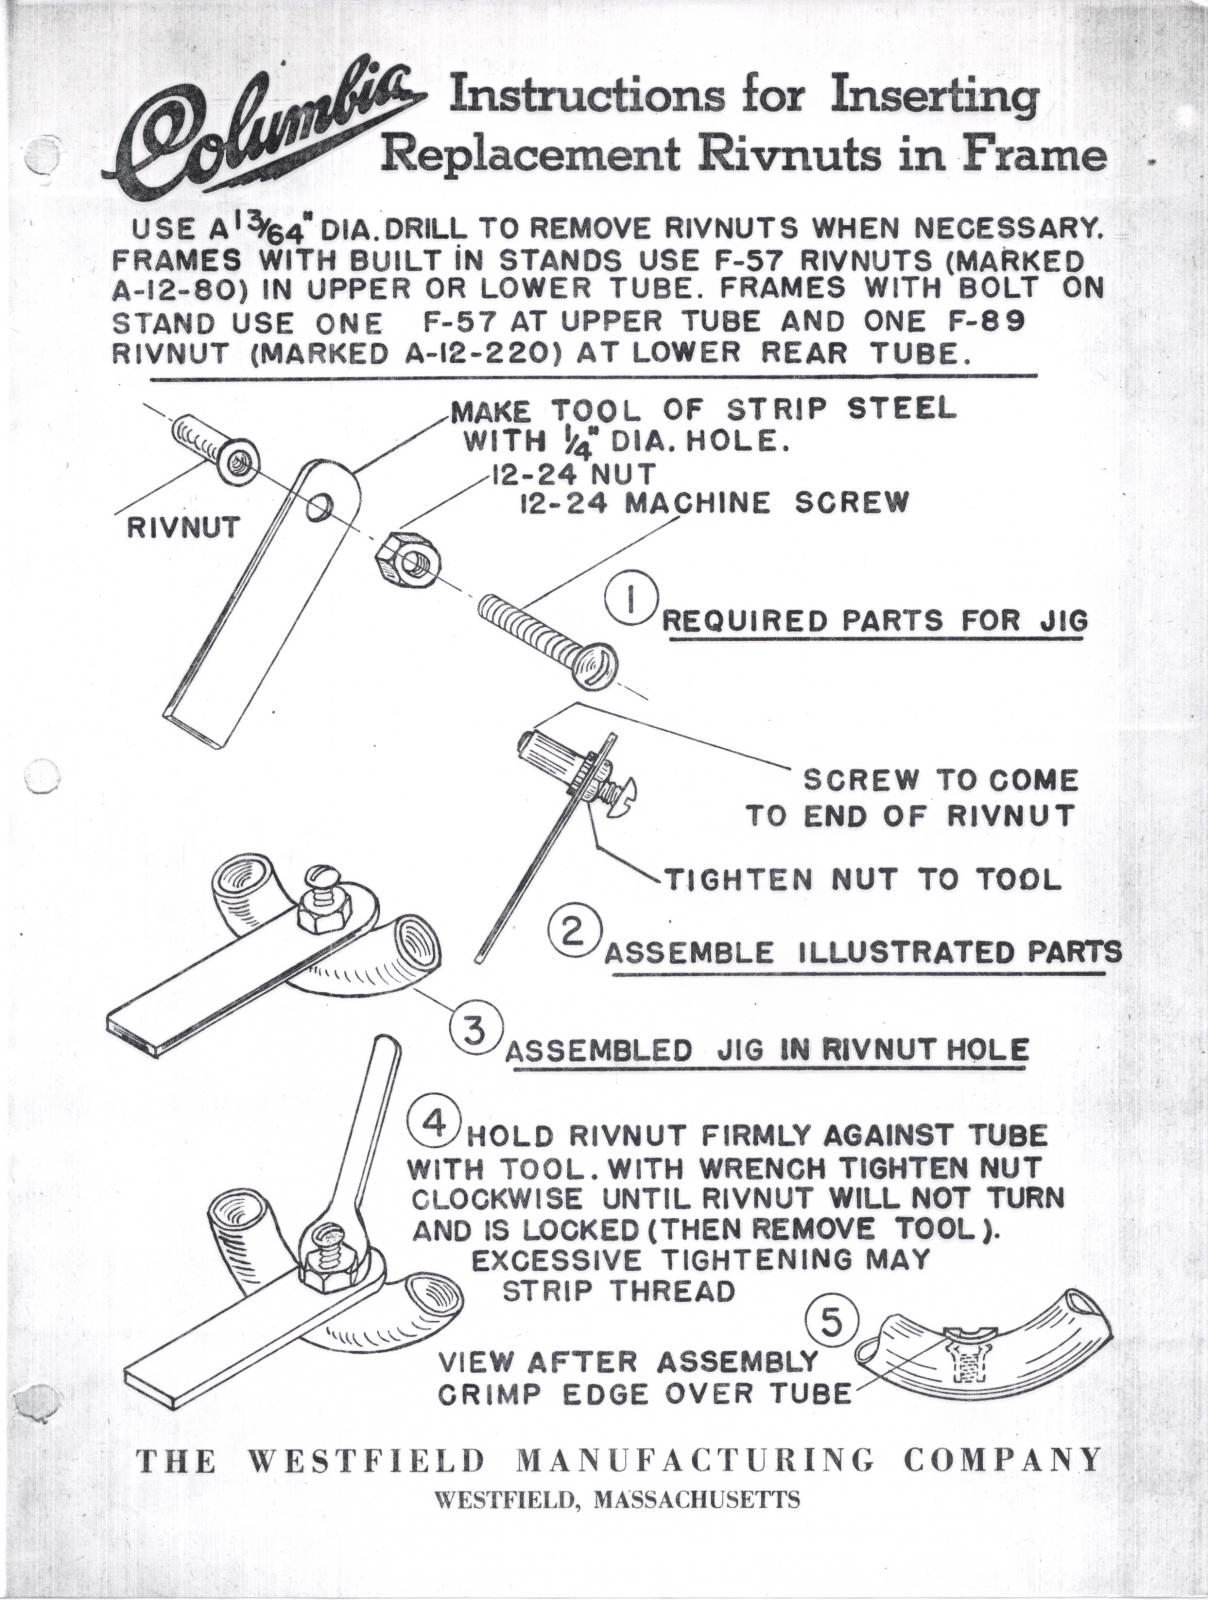 Instructions for inserting replacement Rivnuts in frame.jpg